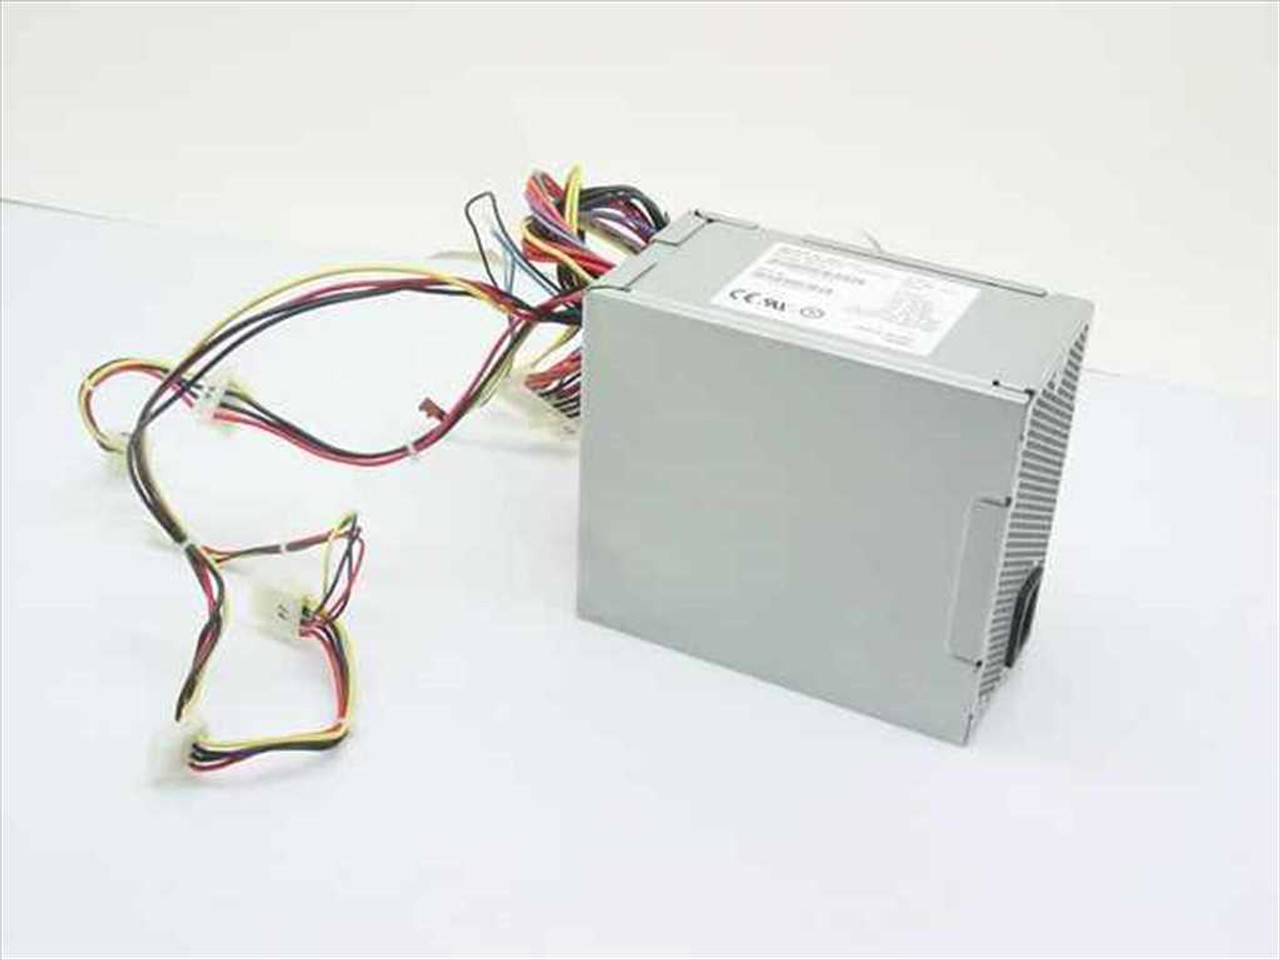 NMB 270 W Power Supply from Sony VAIO PCV-RX series (MJPC-270A1)